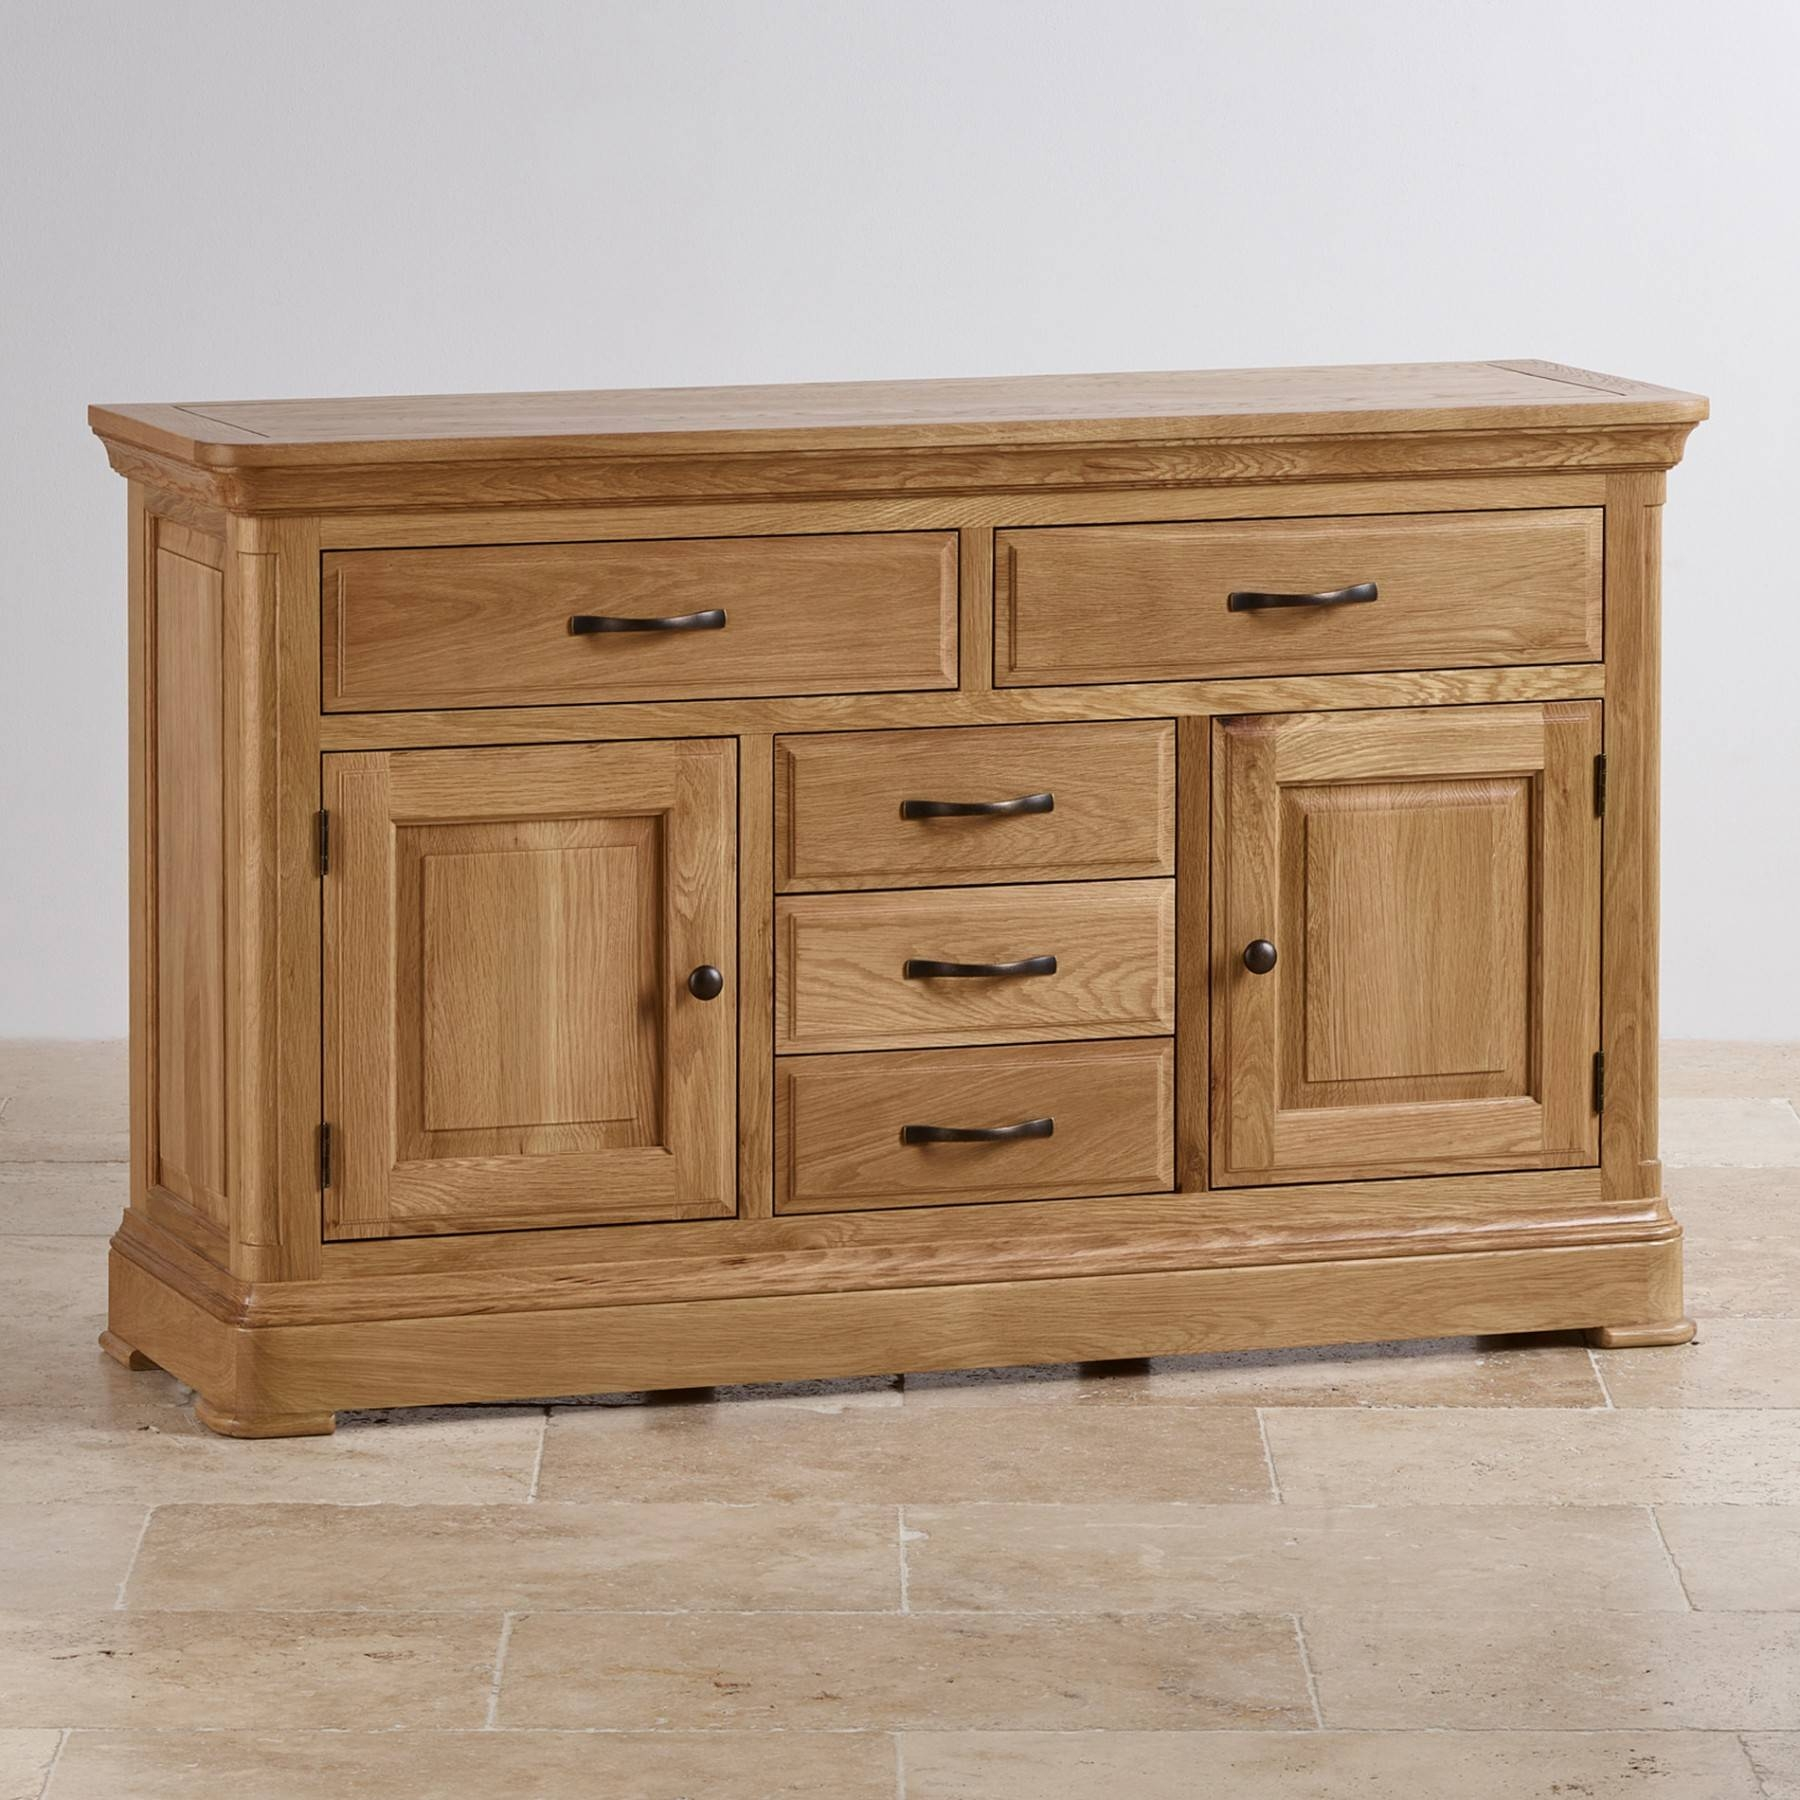 Canterbury Natural Solid Oak Large Sideboard | Sideboards | Dining With Regard To Best And Newest Oak Furniture Land Sideboards (View 7 of 15)